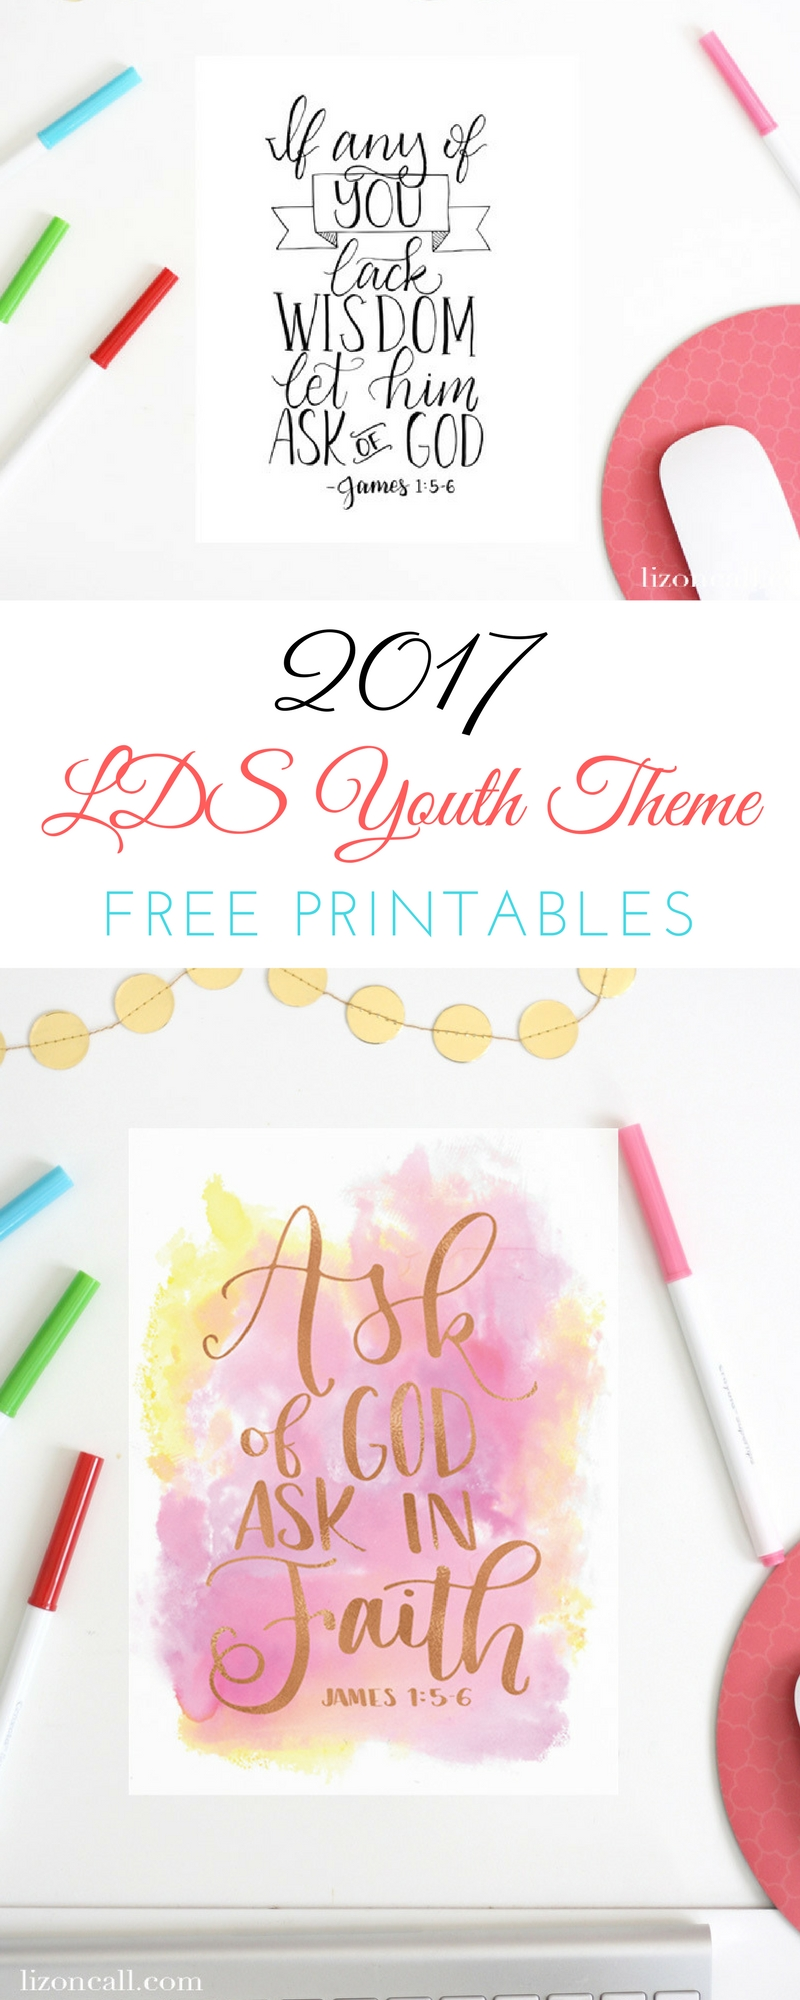 These hand lettered 2017 LDS youth theme printables are beautiful and will be a great reminder to the youth this year.